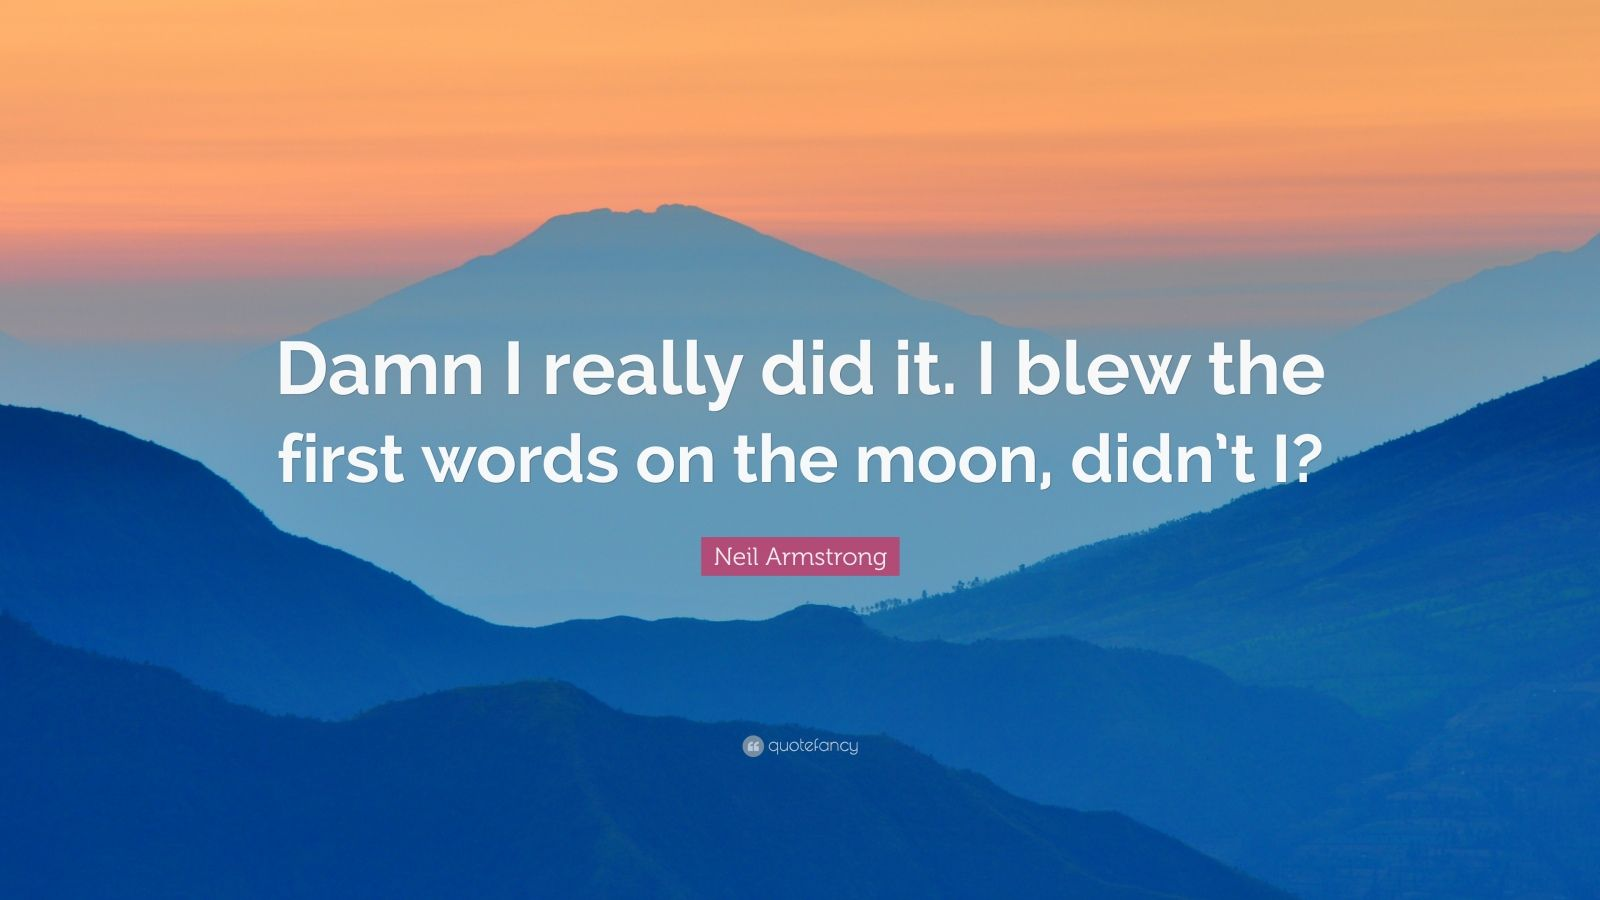 Neil Armstrong  Wikipedia